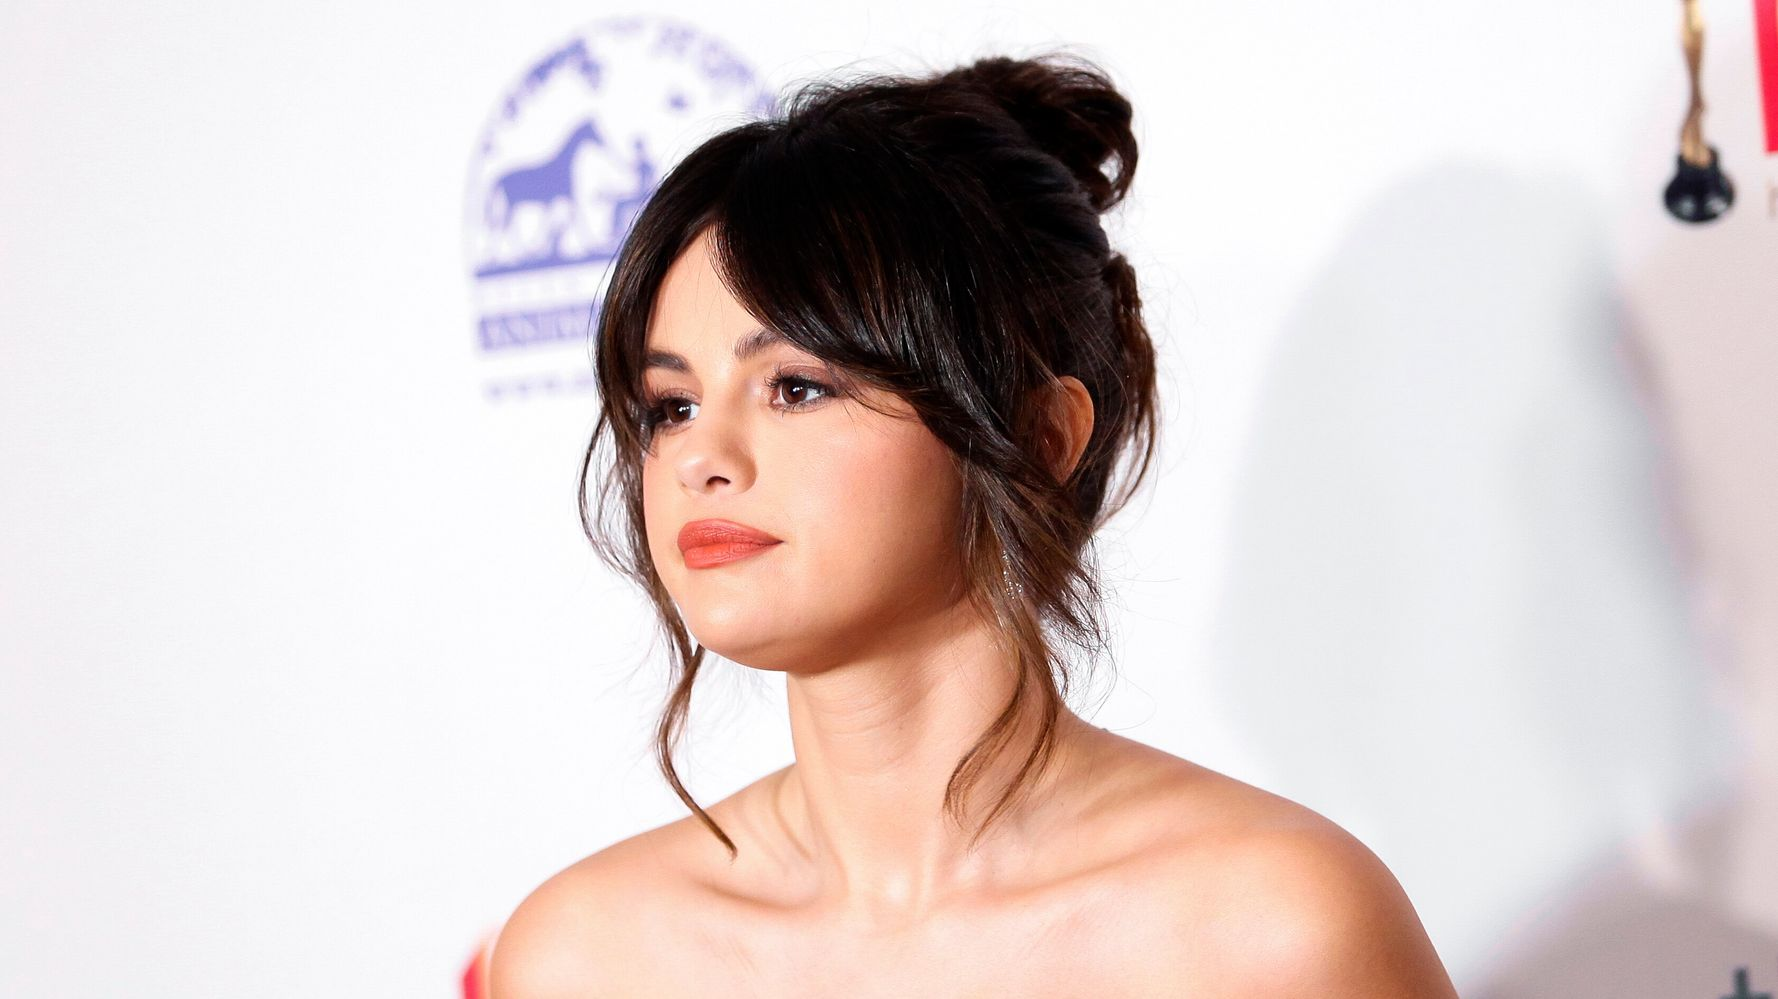 NBC Apologizes For 'Saved By The Bell' Jokes Mocking Selena Gomez's Kidney Transplant